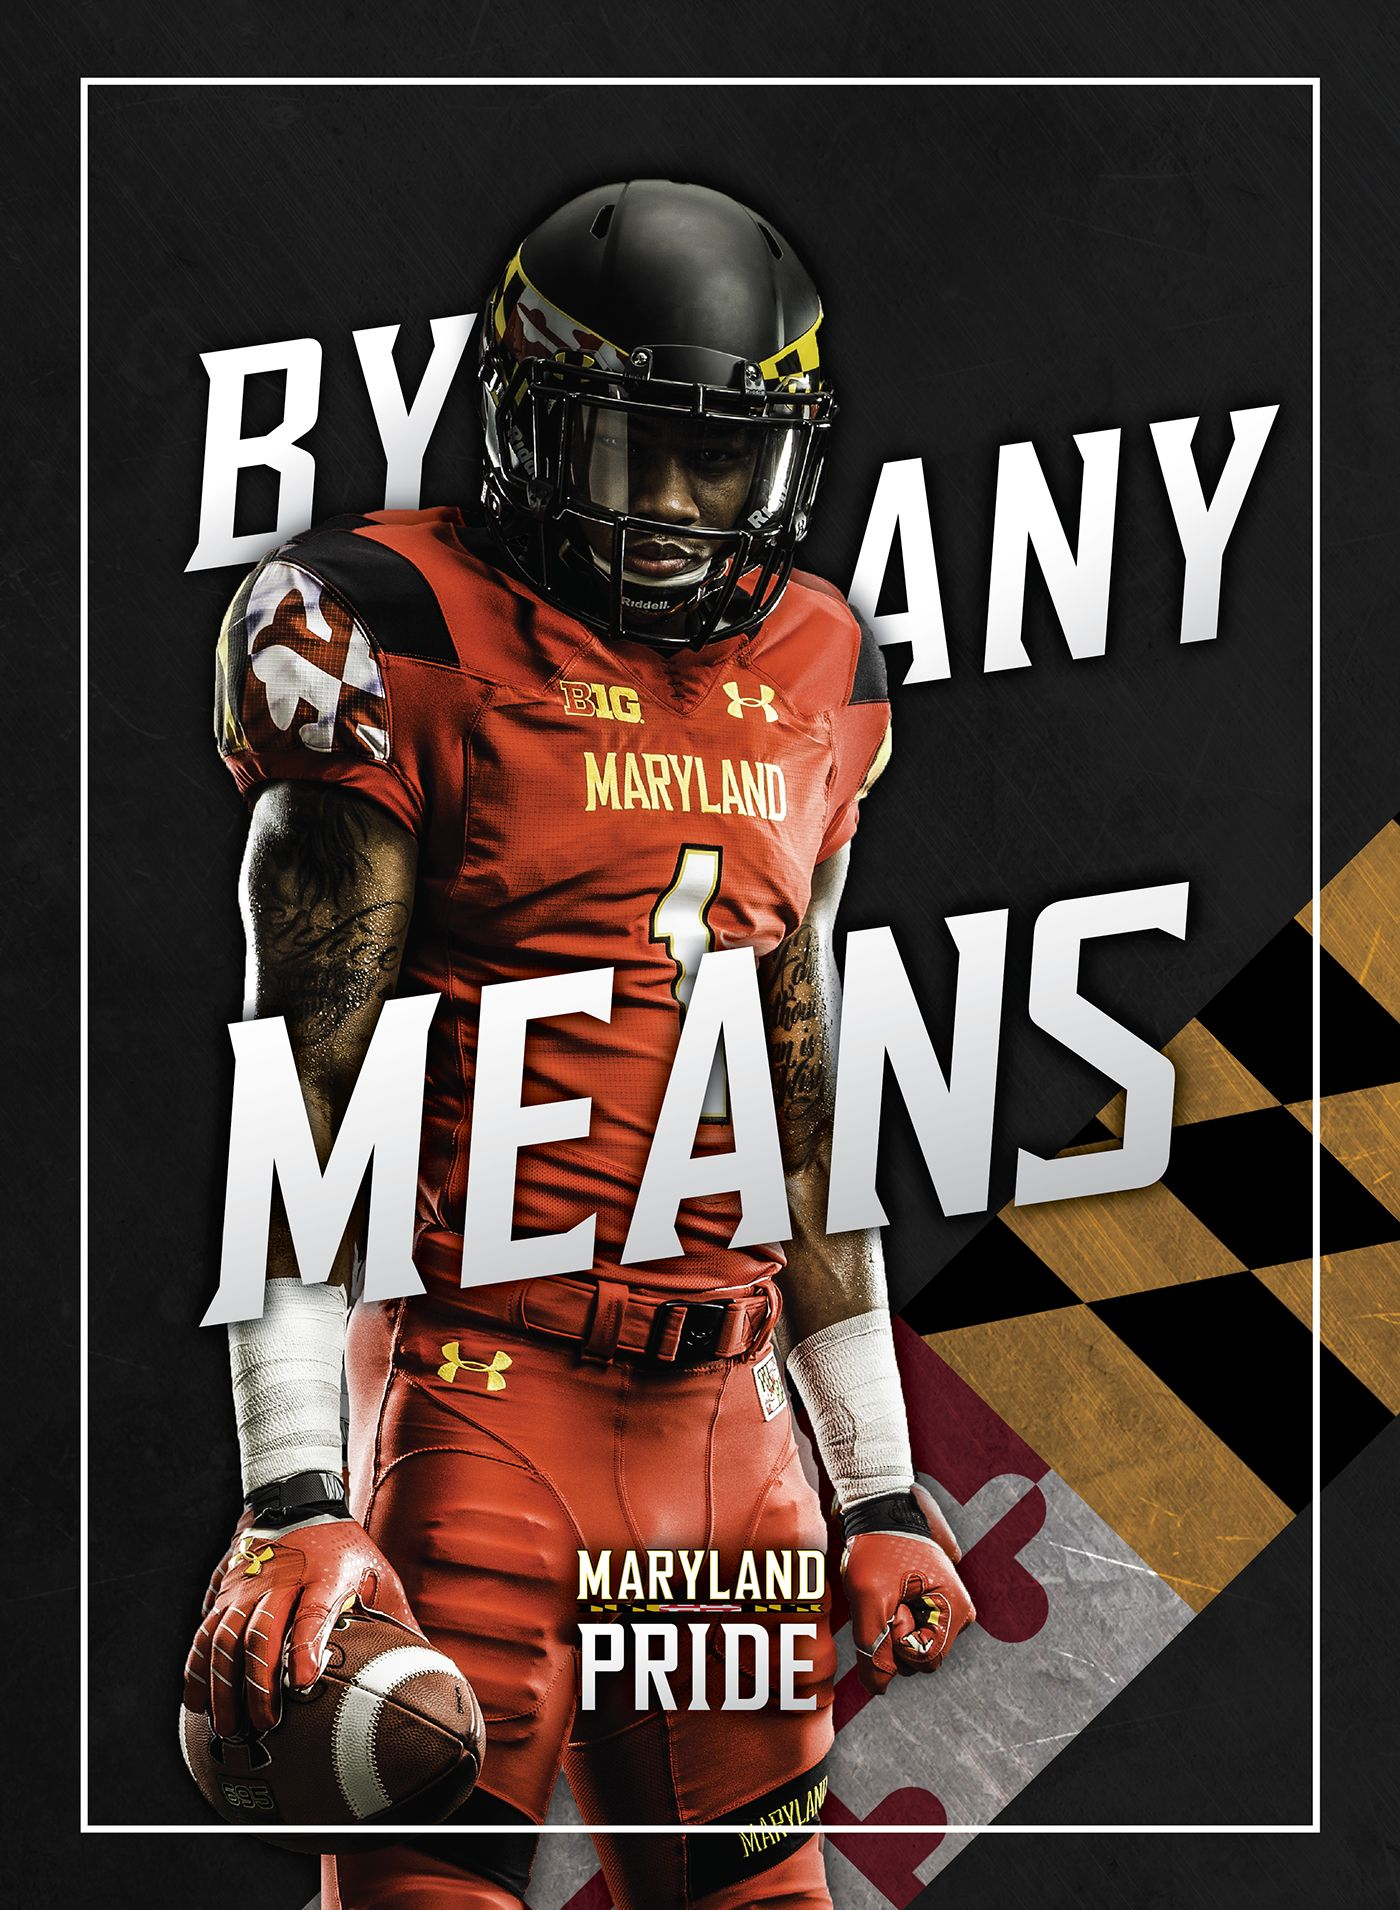 Stefon Diggs Maryland Poster On Behance Football Design Sports Design Basketball Pictures